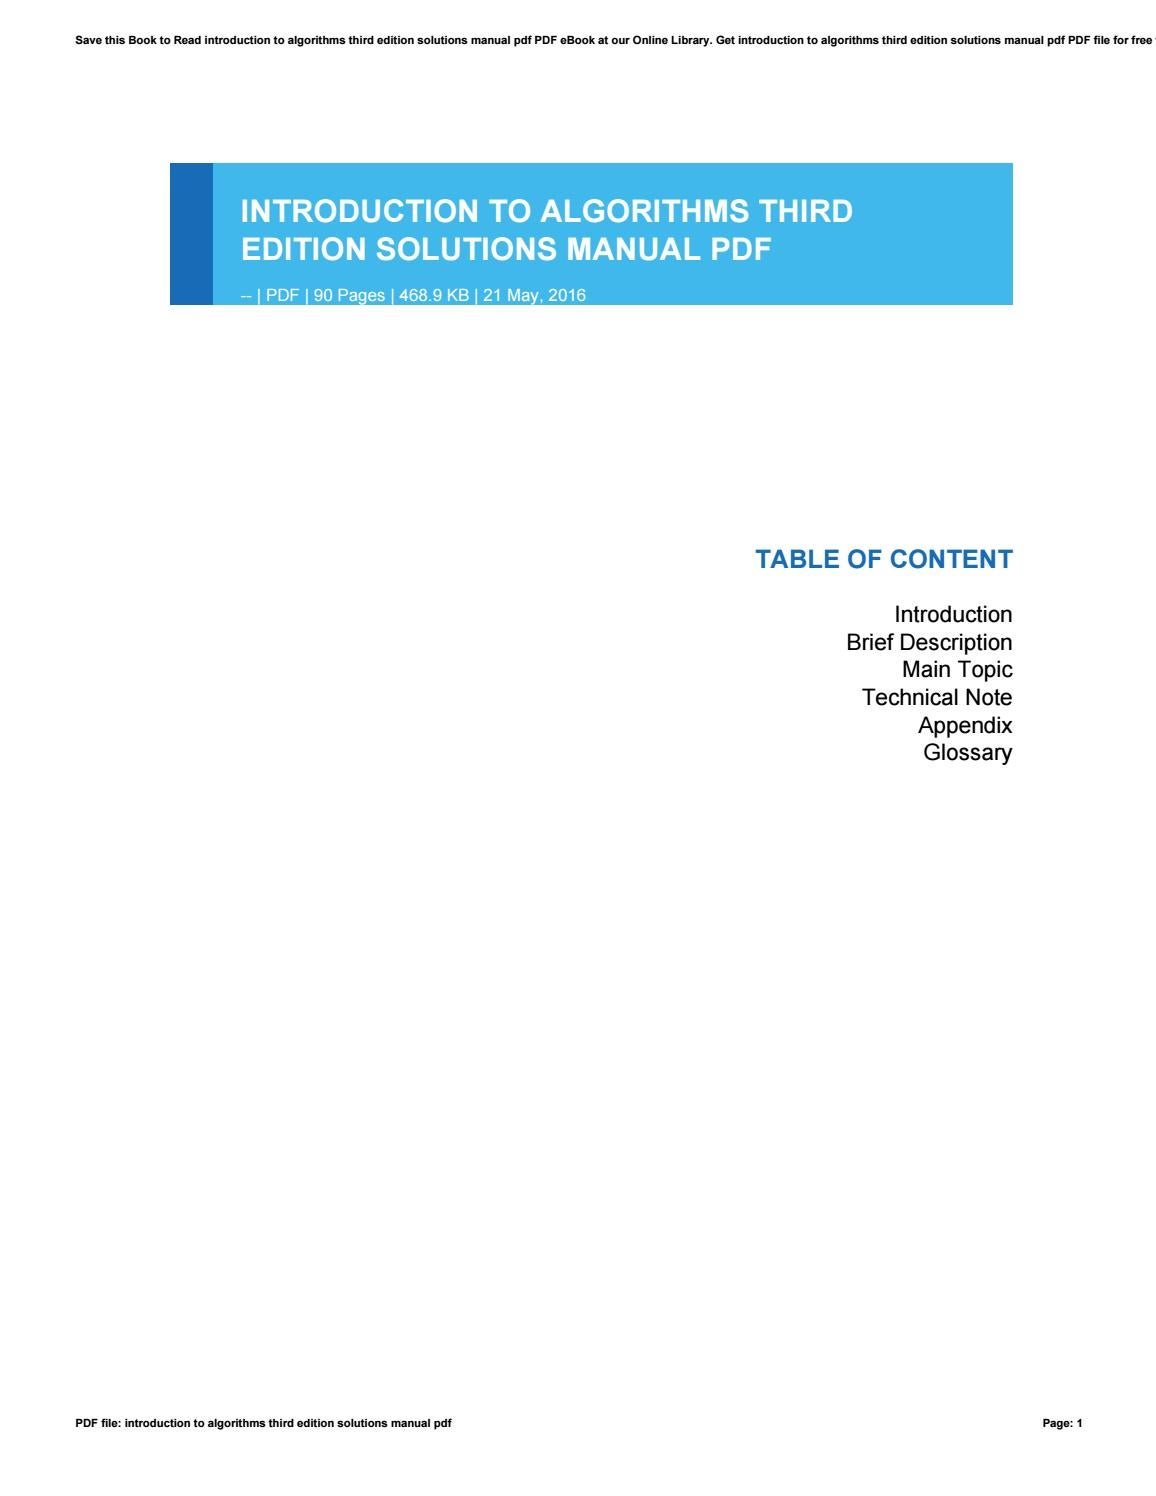 Introduction To Algorithms Solution Manual 3rd Pdf